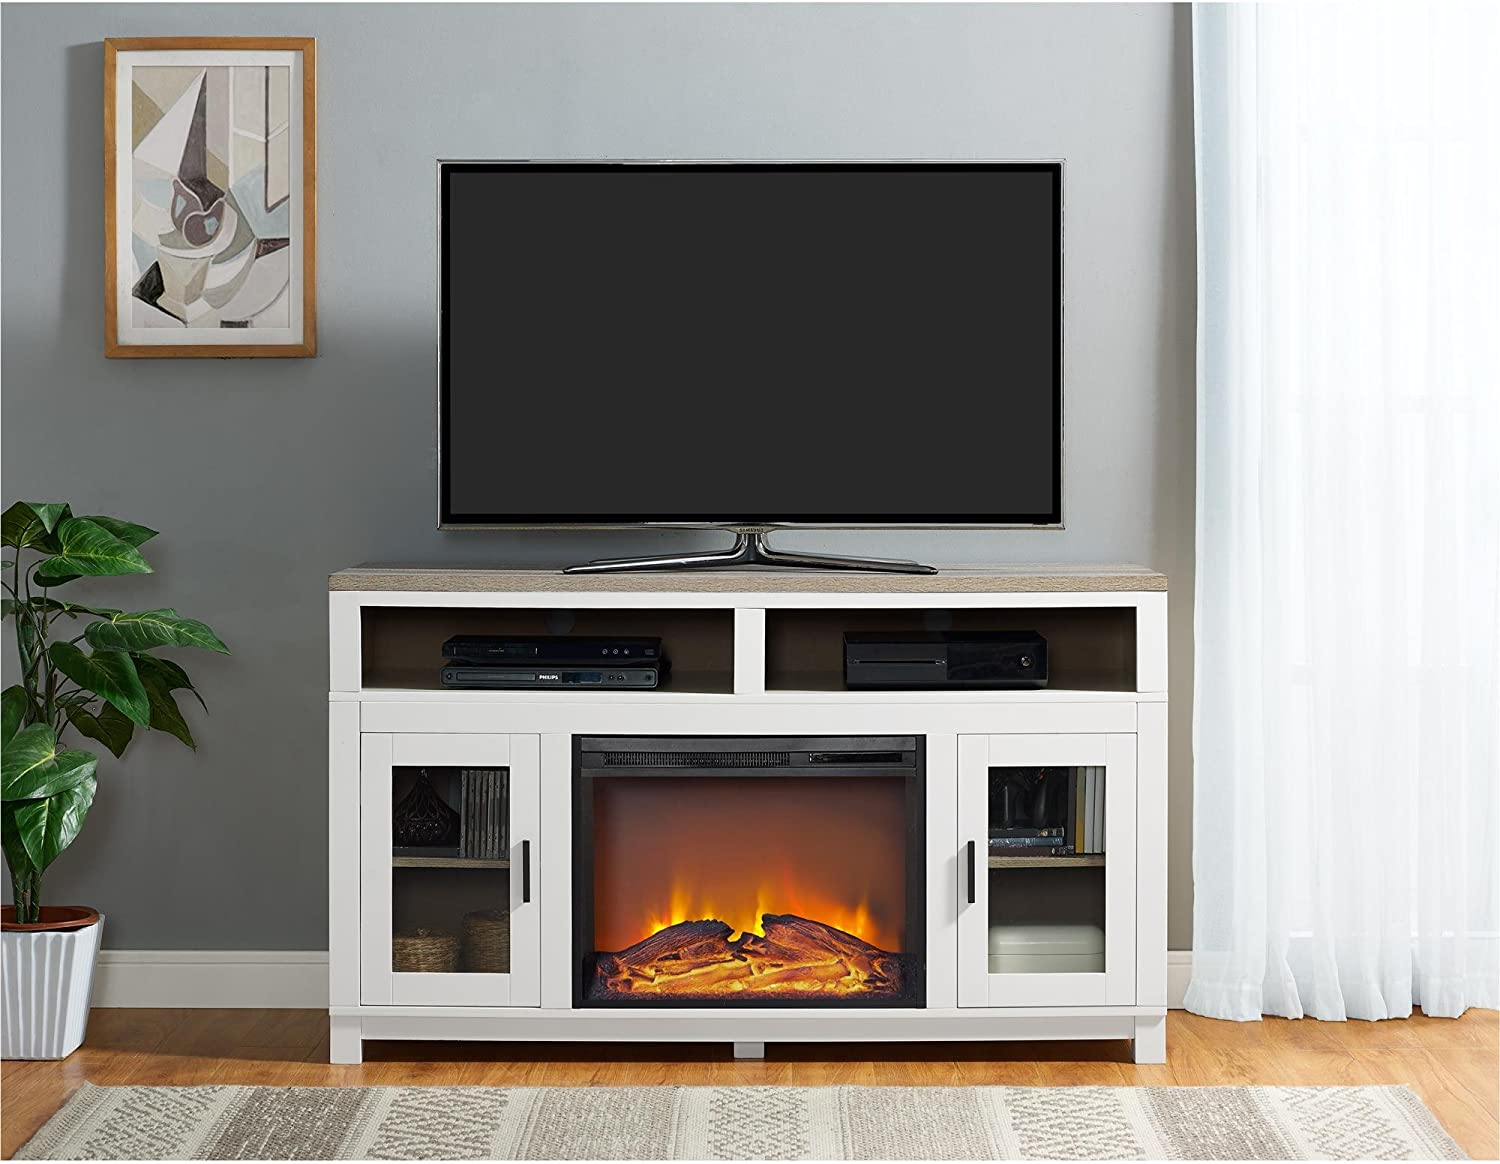 Ameriwood Home Carver Electric Fireplace Tv Stand For Tvs Up To 60 Wide White Furniture Decor